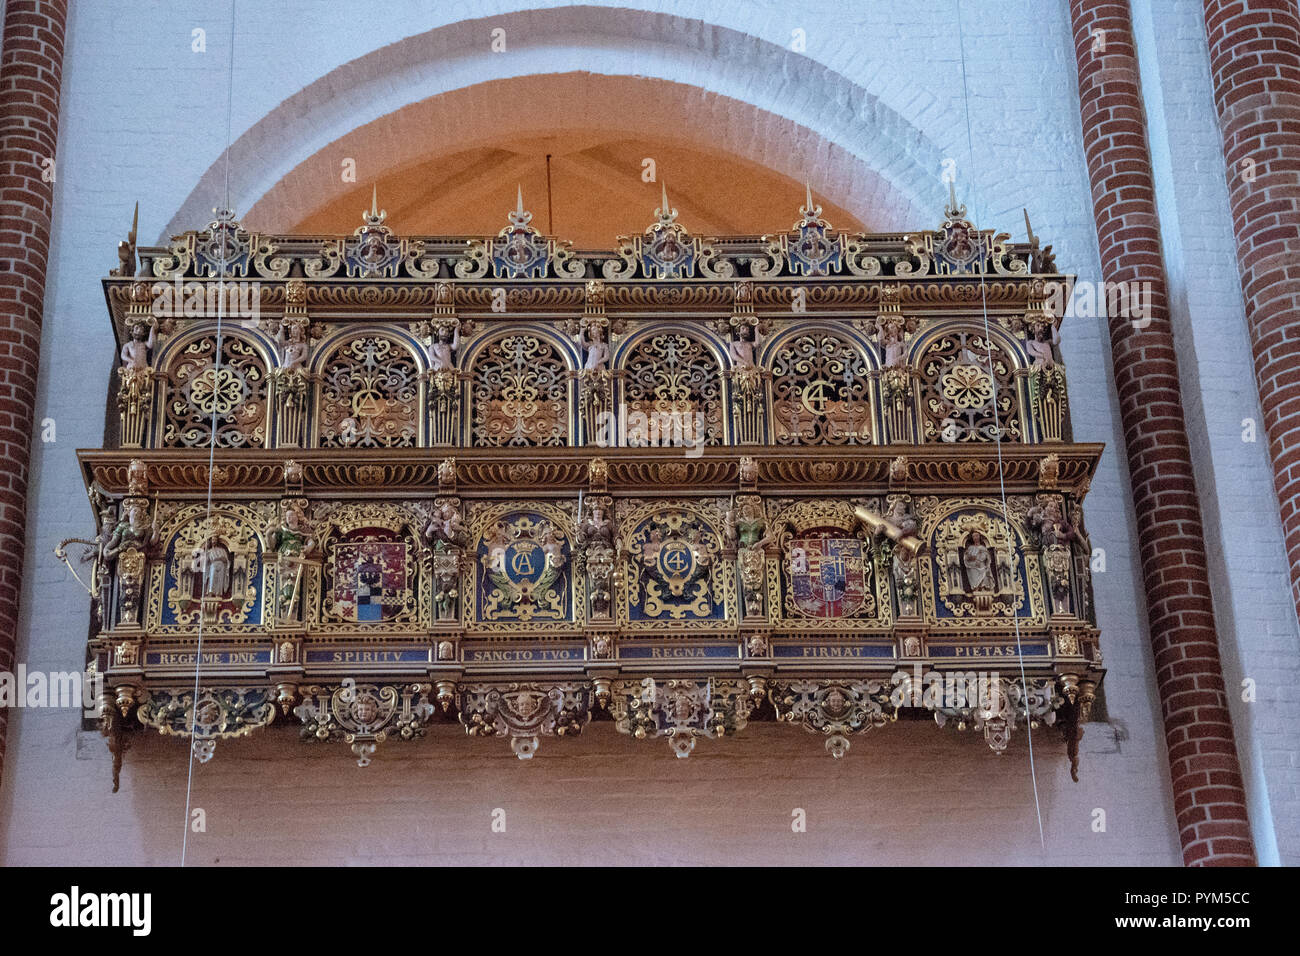 Private Box of King Christian 4. The box is divided by herms depicting the Christian virtues: Faith, Hope, Charity, Justice, Prudence, Fortitude and T Stock Photo